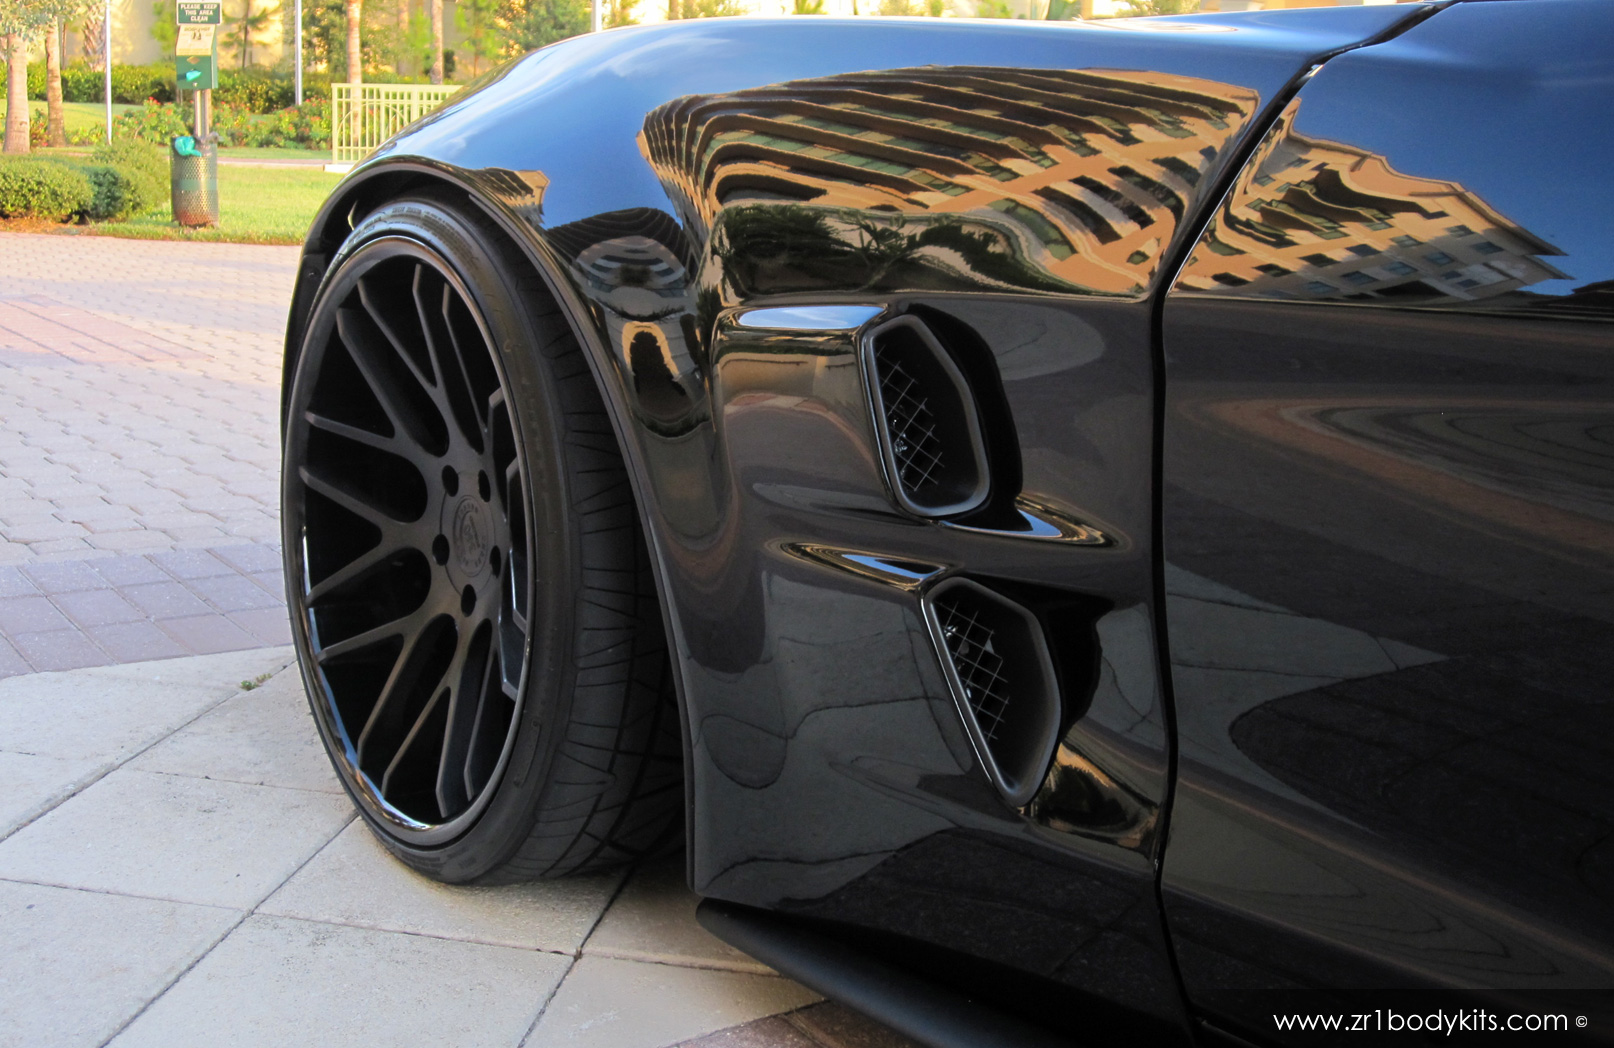 Zr6x Extreme Widebody Corvette Body Kit Delivers C6 R